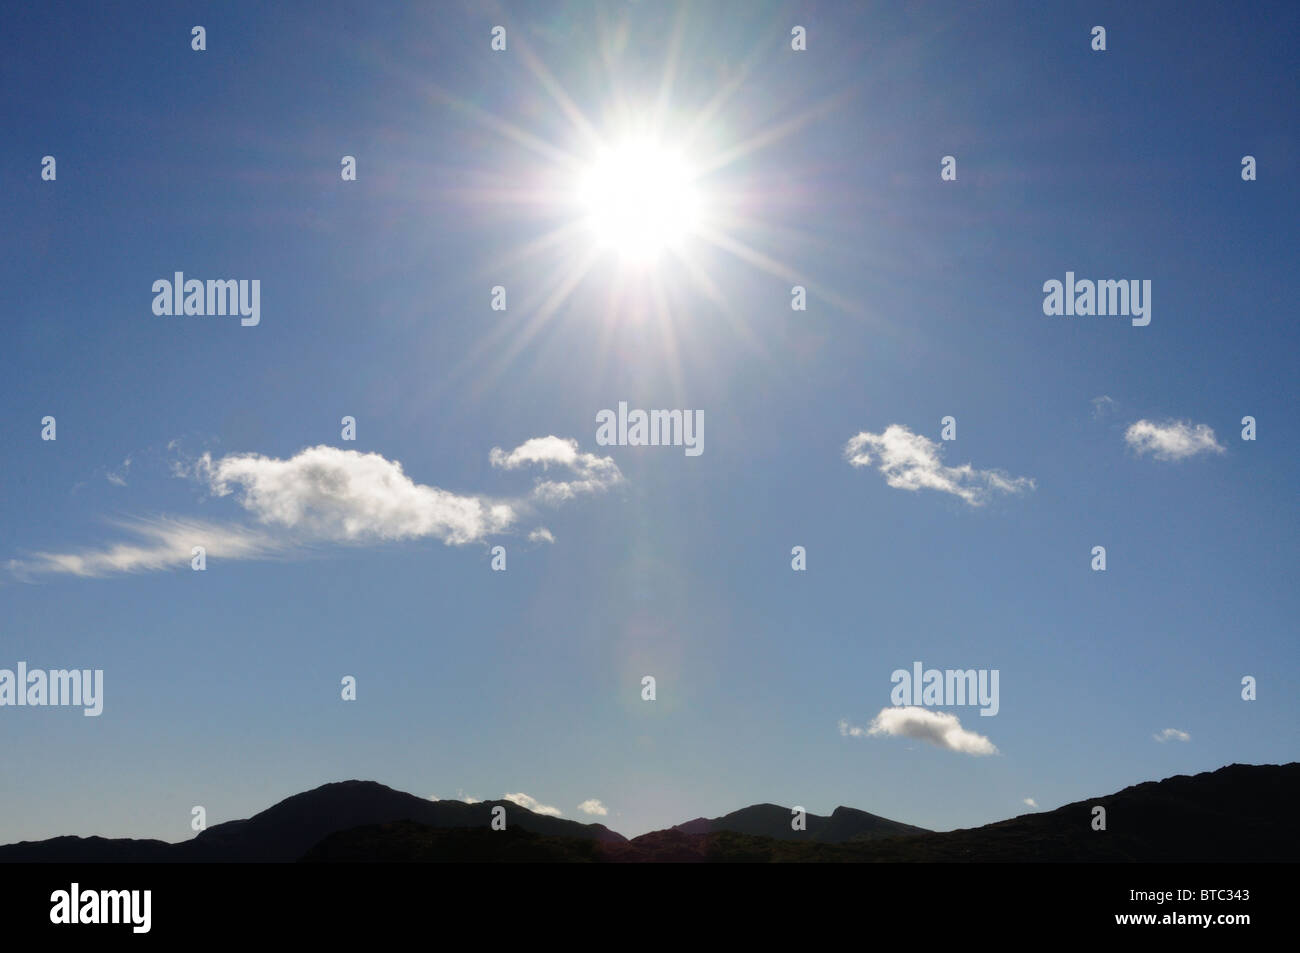 Starburst sun over mountains in the English Lake District - Stock Image